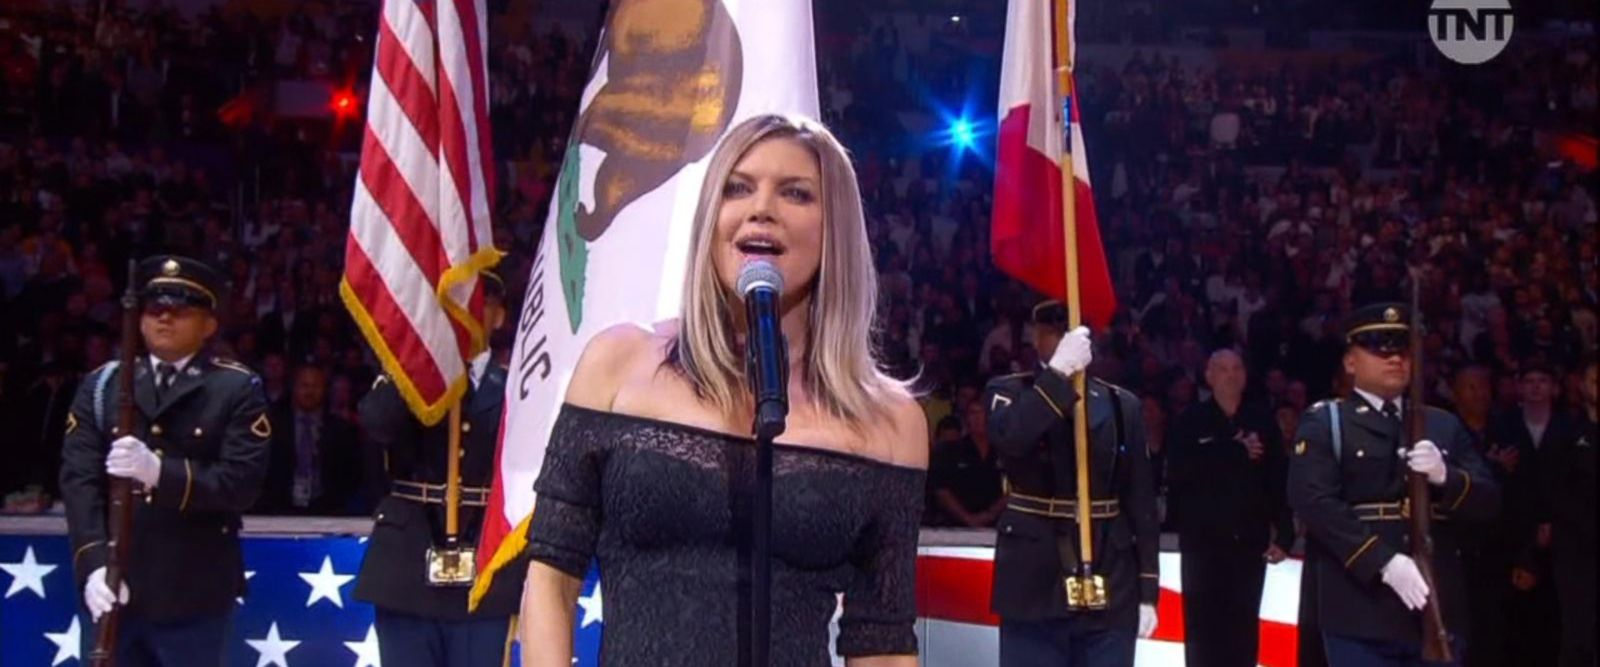 VIDEO: Fergie says she 'wanted to try something special' for NBA All-Star performance